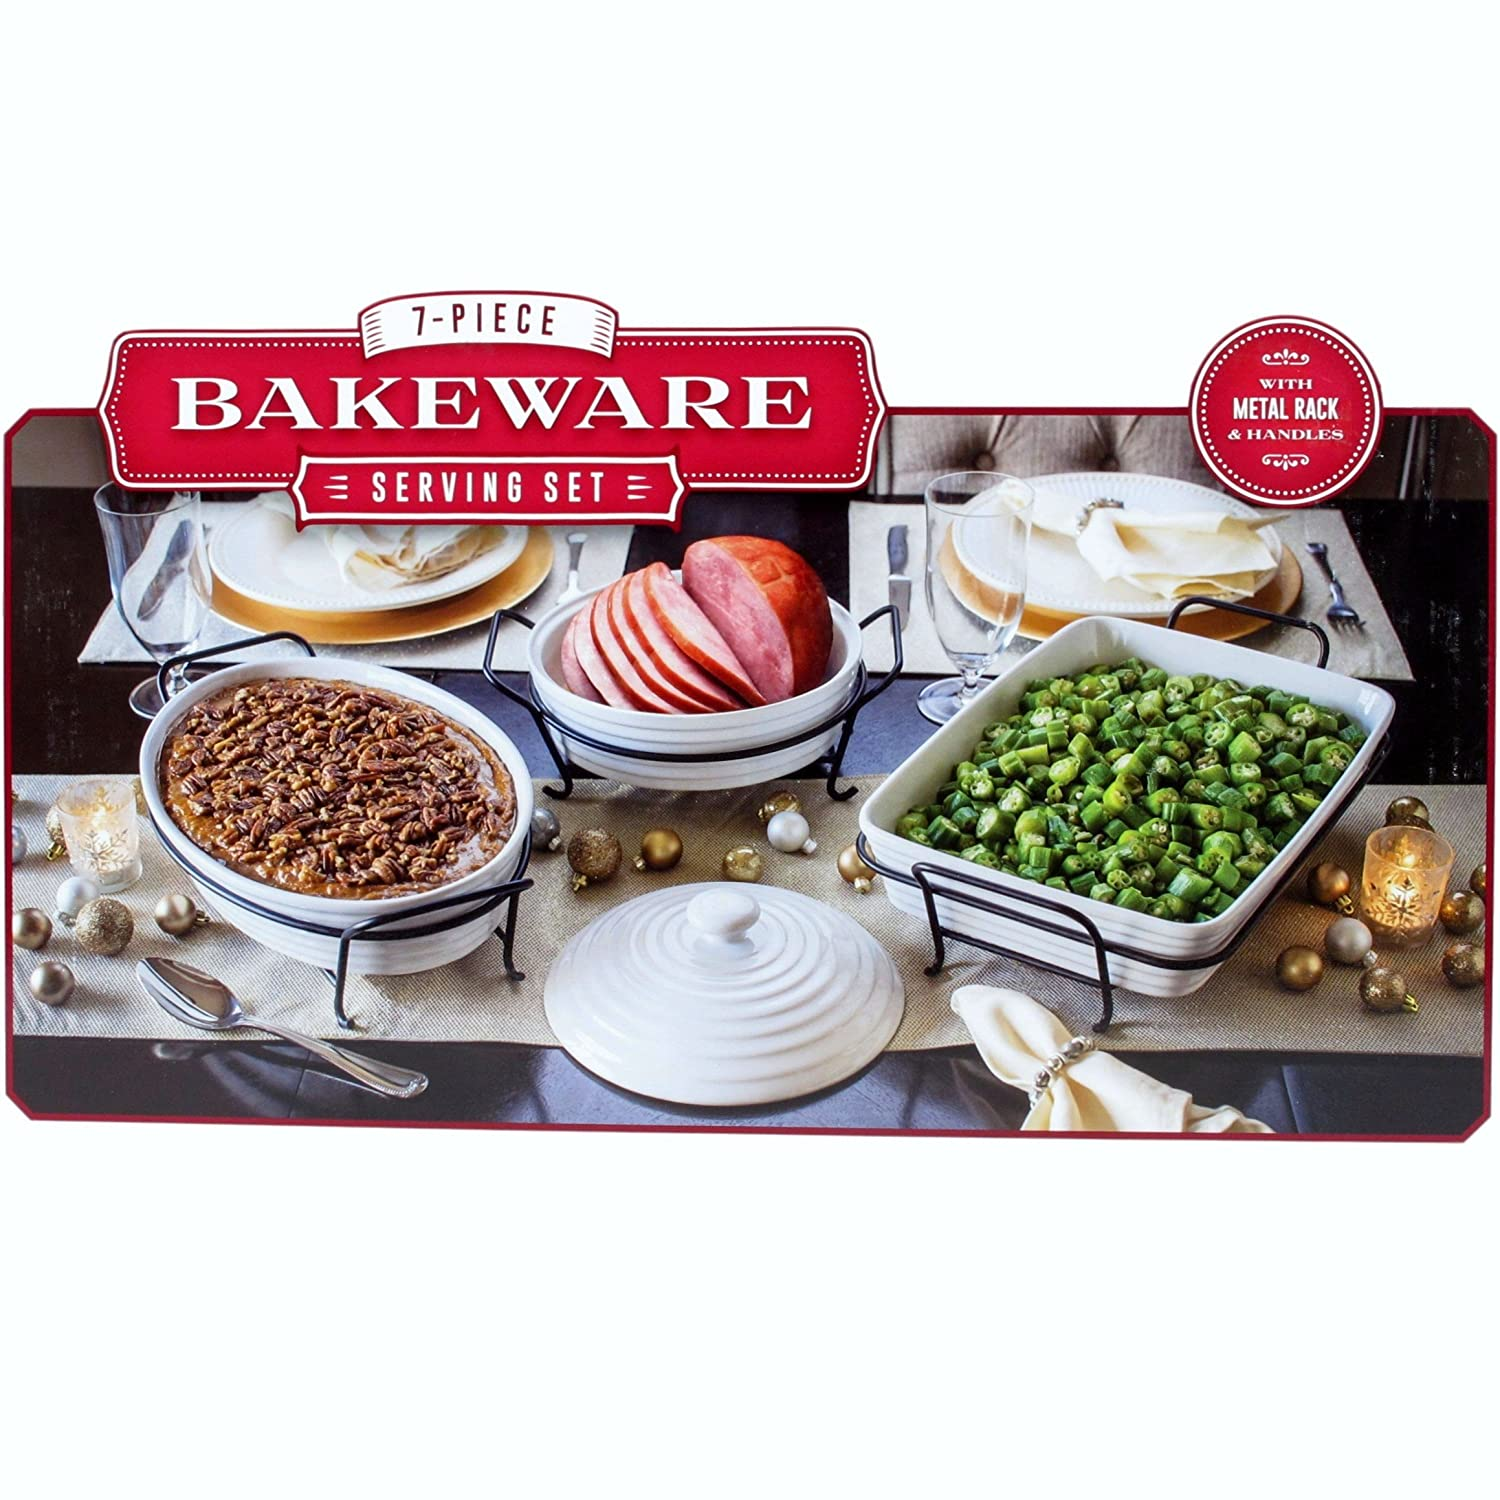 Ceramic 7 Piece Bakeware Serving Set With Metal Rack And Handles White Amazoncouk Kitchen Home